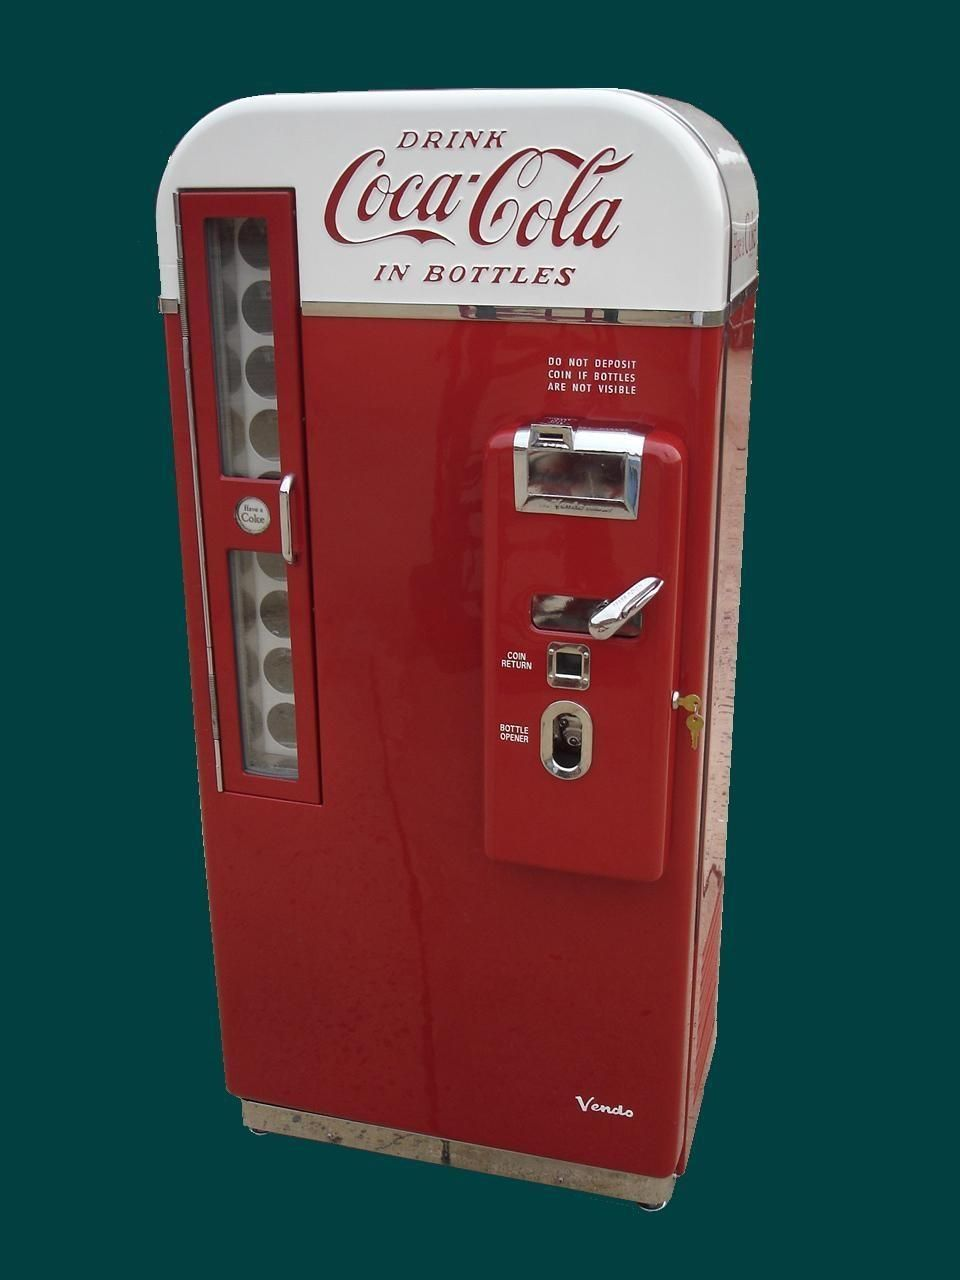 coca cola vending machines Top of the line machines in marketwe take care of everything - cleaning, filling and servicingit is very easy we operate a national fleet of over 6000 high.